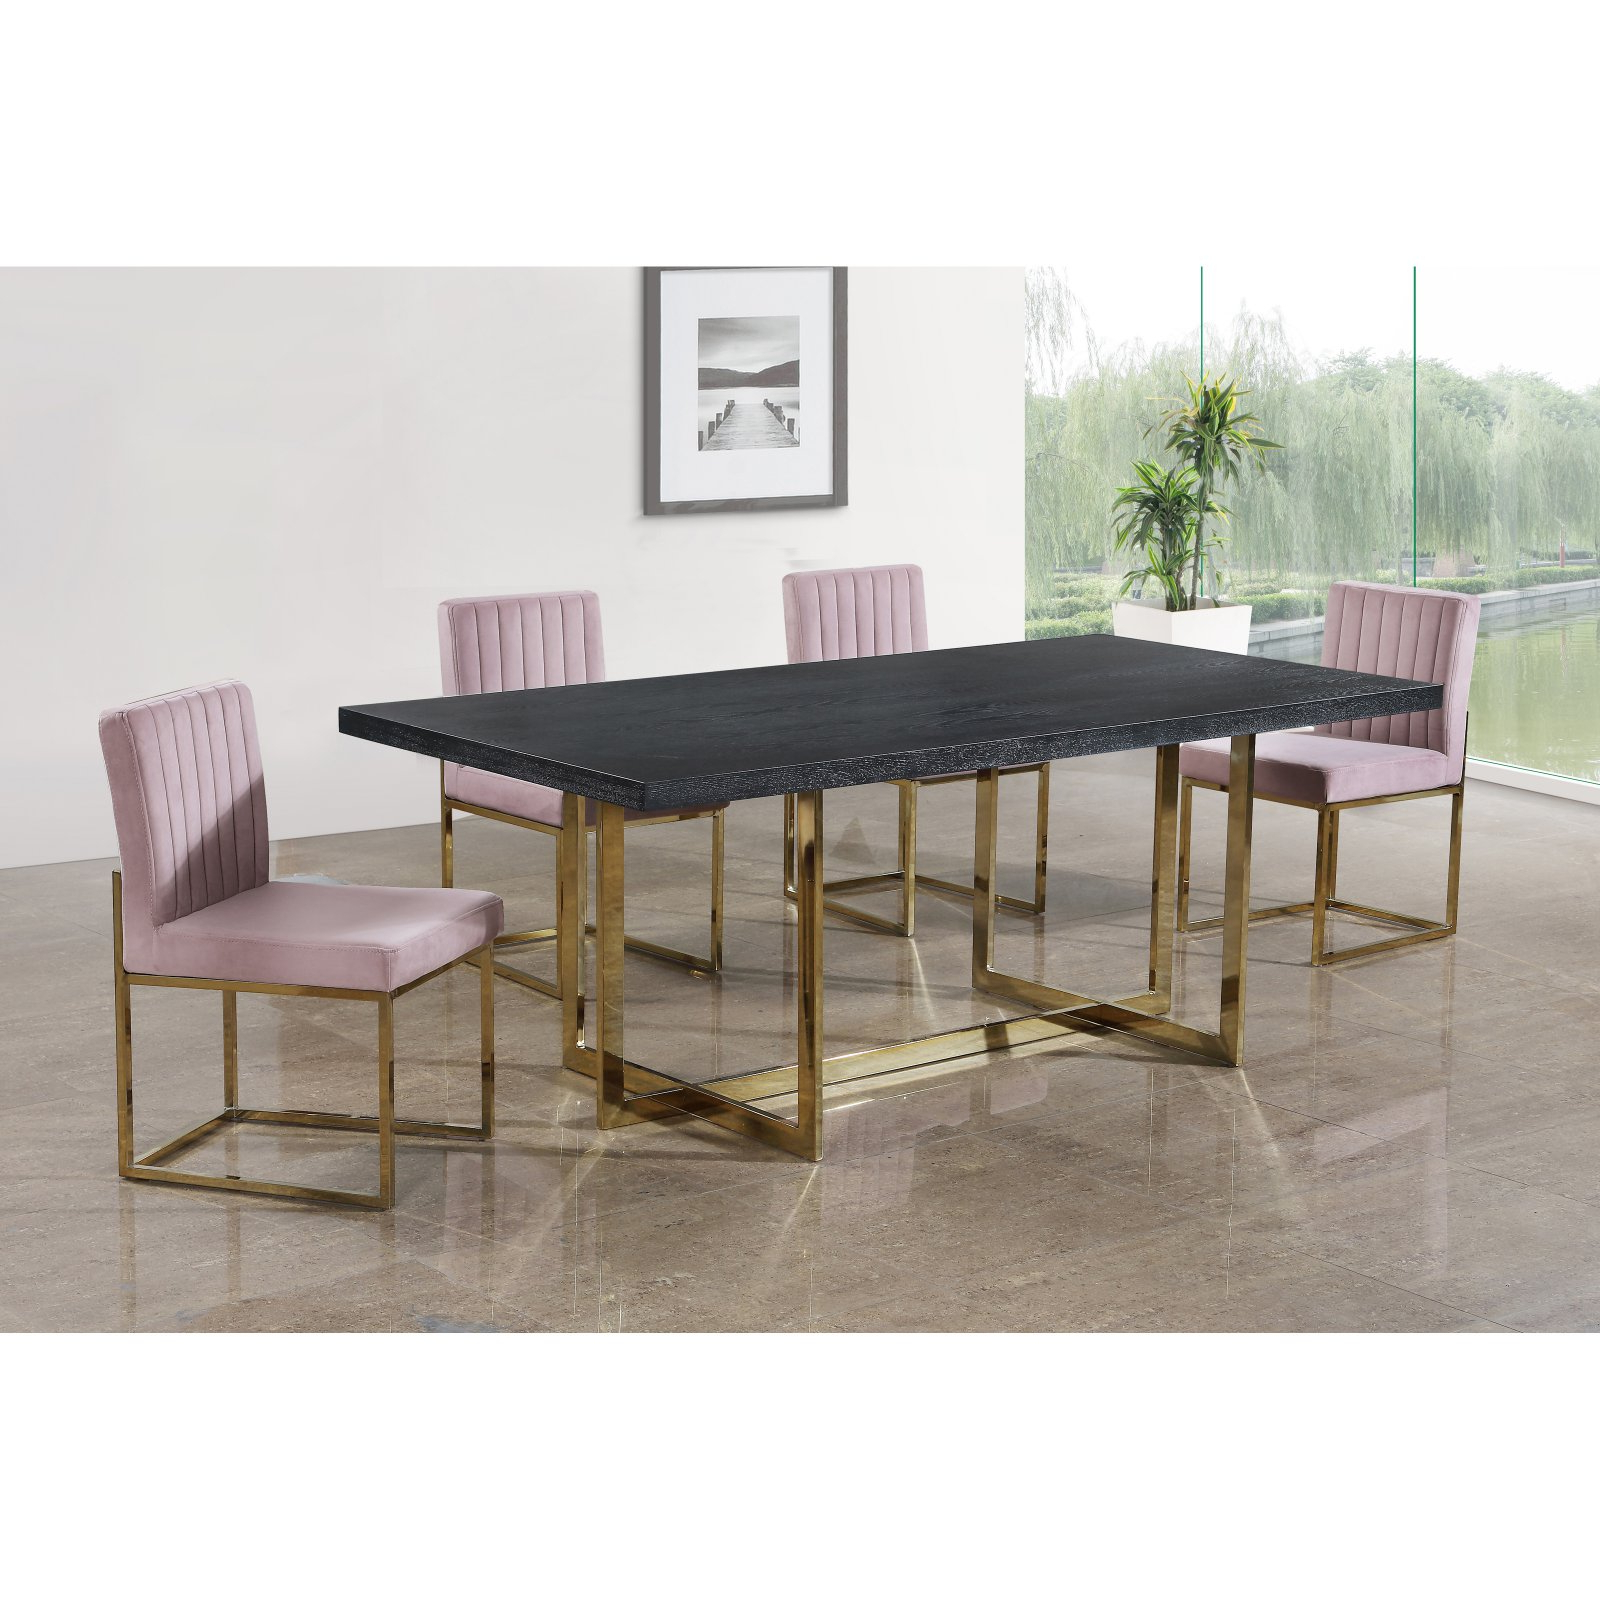 Most Current Meridian Furniture Inc Elle Rectangular Dining Table Inside Charcoal Transitional 6 Seating Rectangular Dining Tables (Gallery 22 of 30)